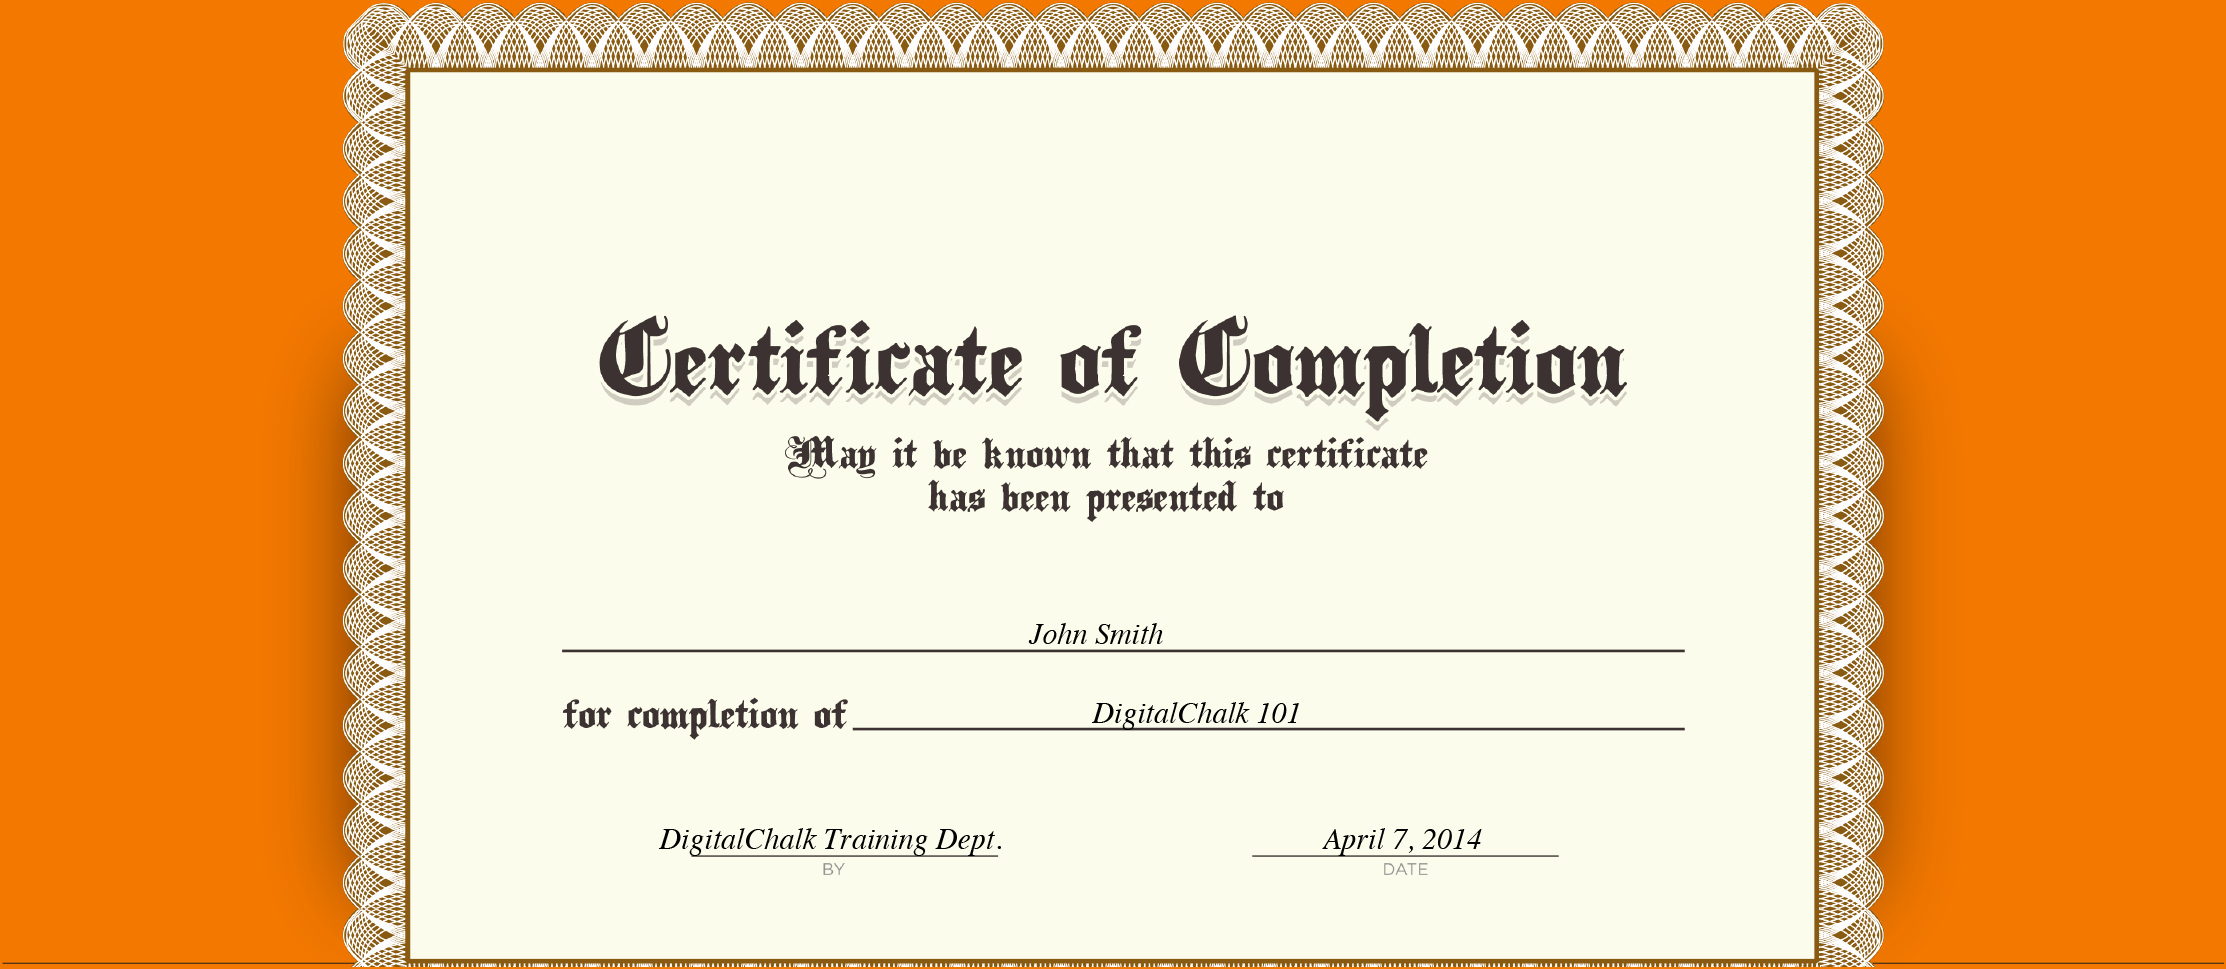 Sample Training Certificate Of Completion Luxury 5 Certificate Of Pletion Templates